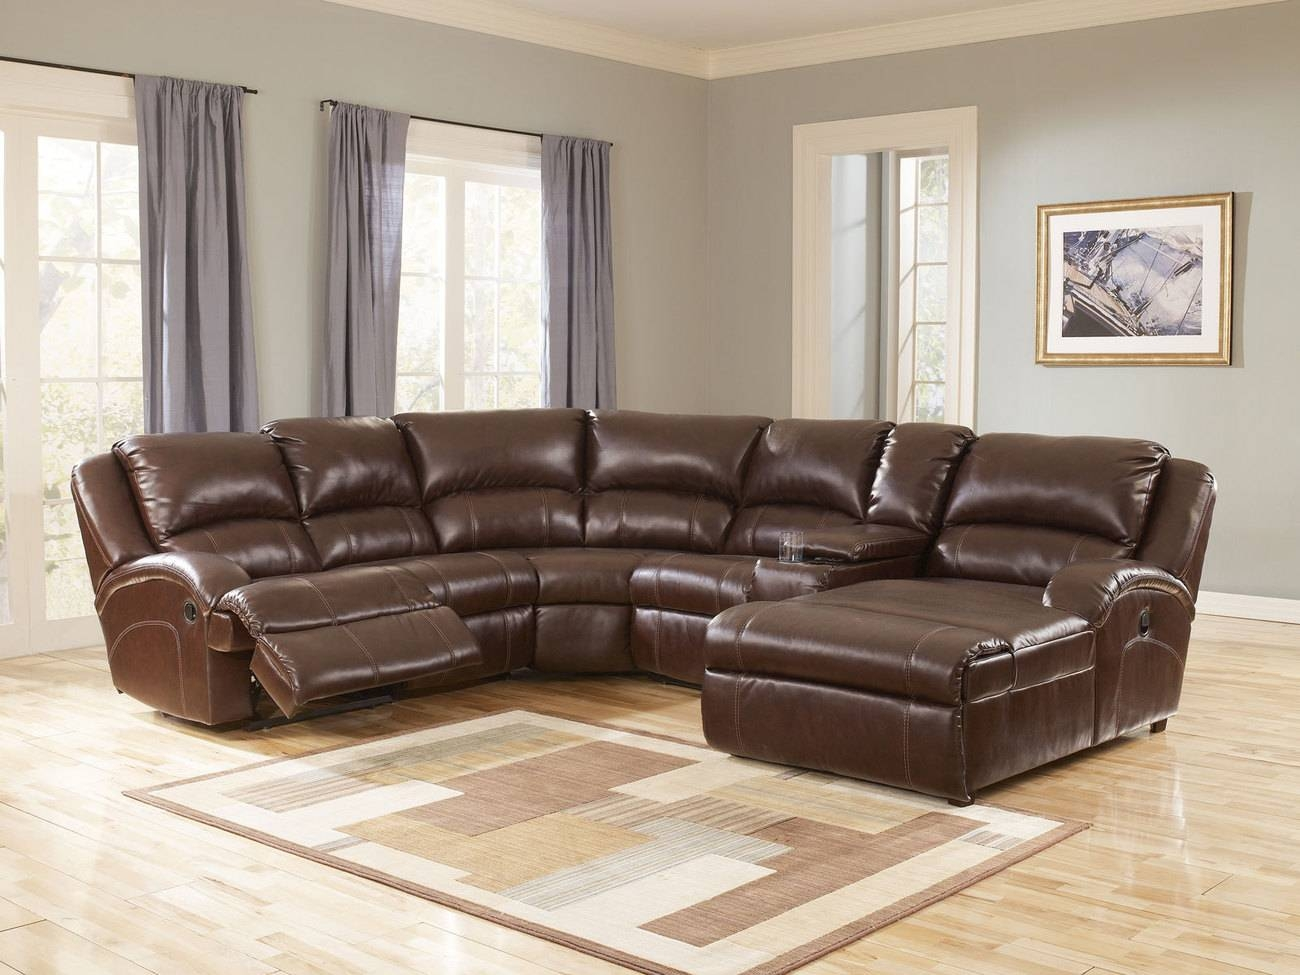 Sofas Center : Cheap Sectional Sofasith Recliners Cleanupflorida intended for Curved Sectional Sofa With Recliner (Image 24 of 30)